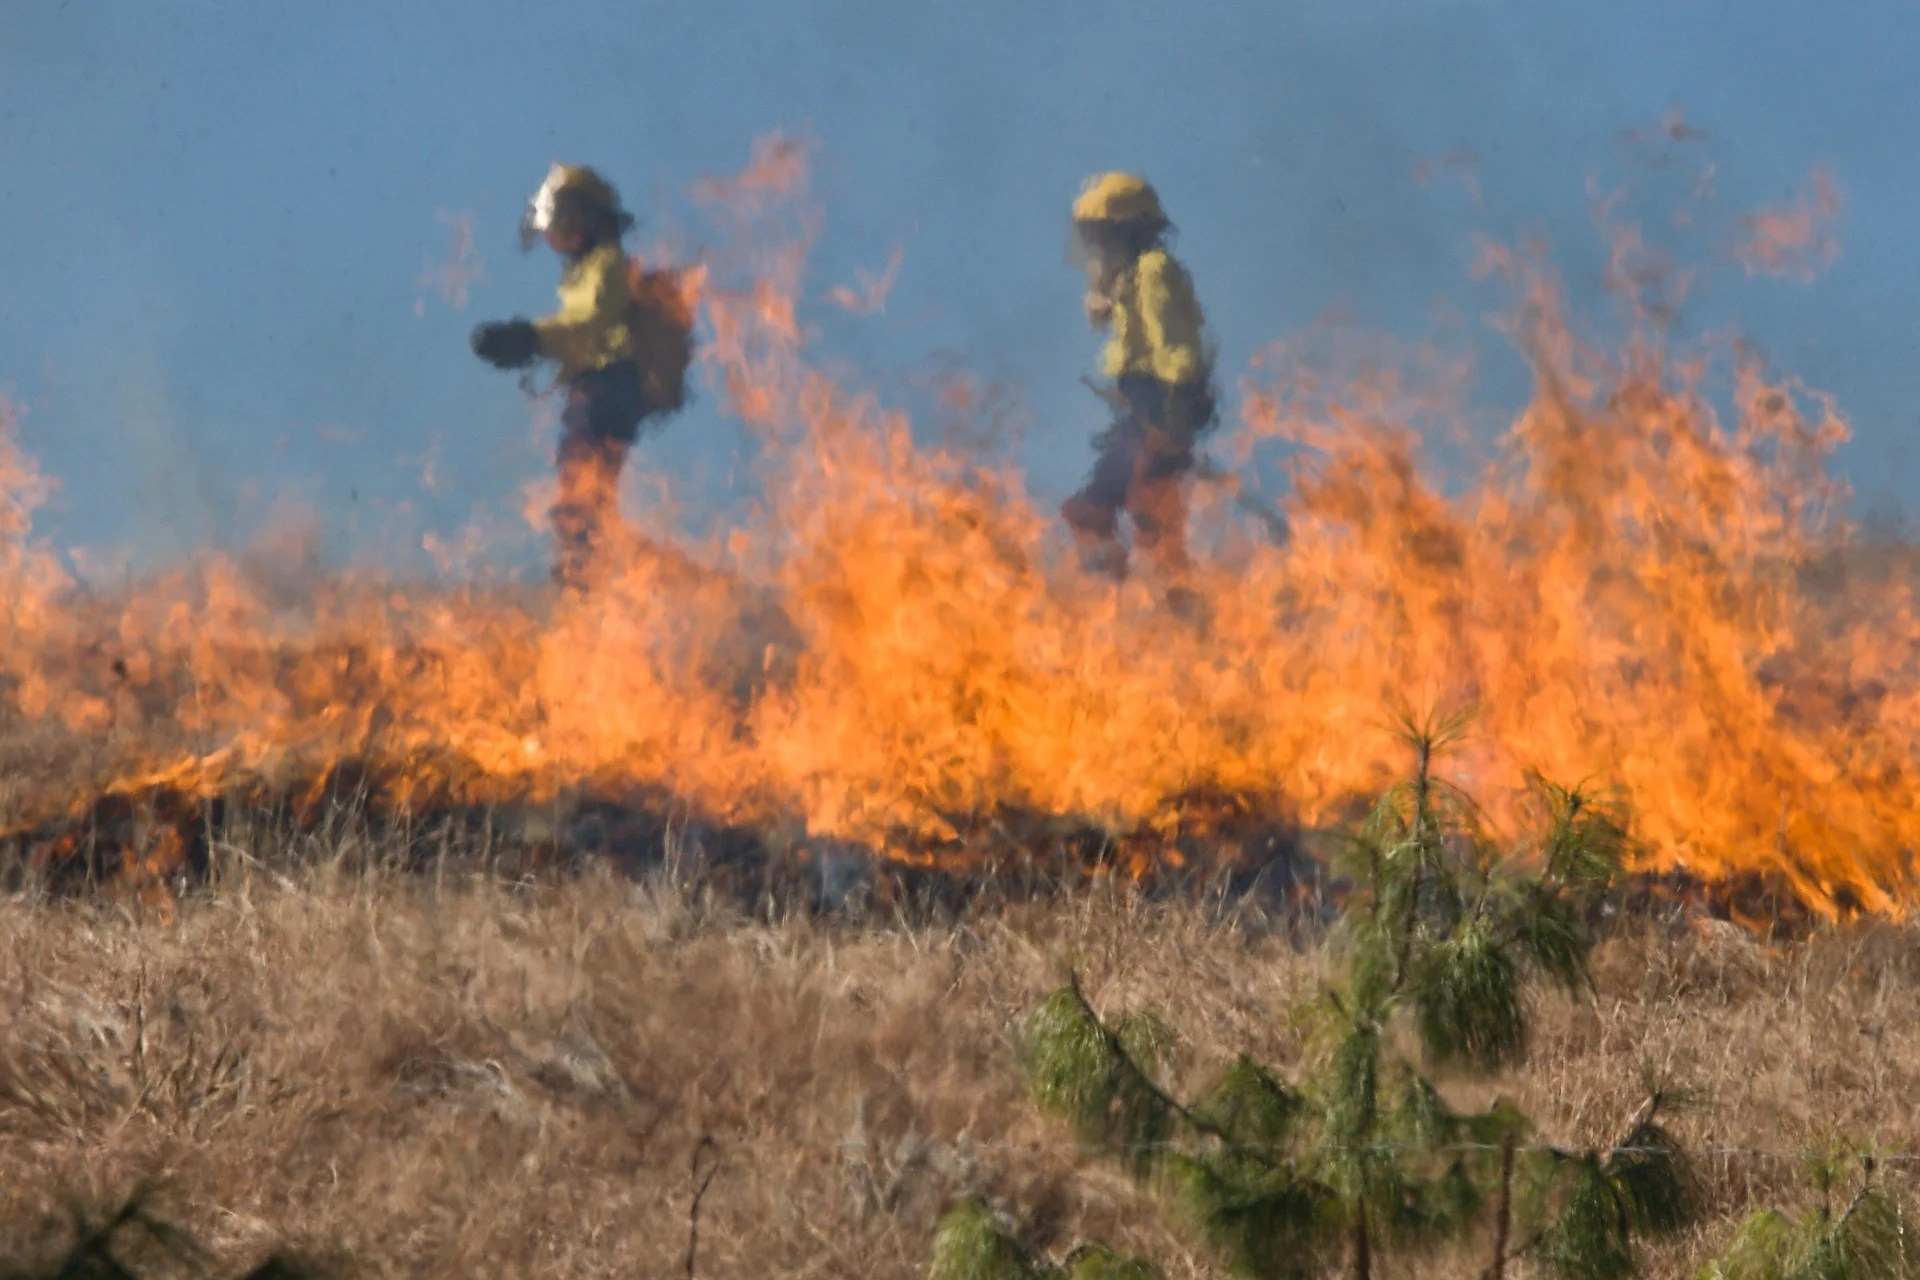 With the EUPHEME project, Prof. Stott is linking extreme heatwaves and resulting wildfires to climate change.